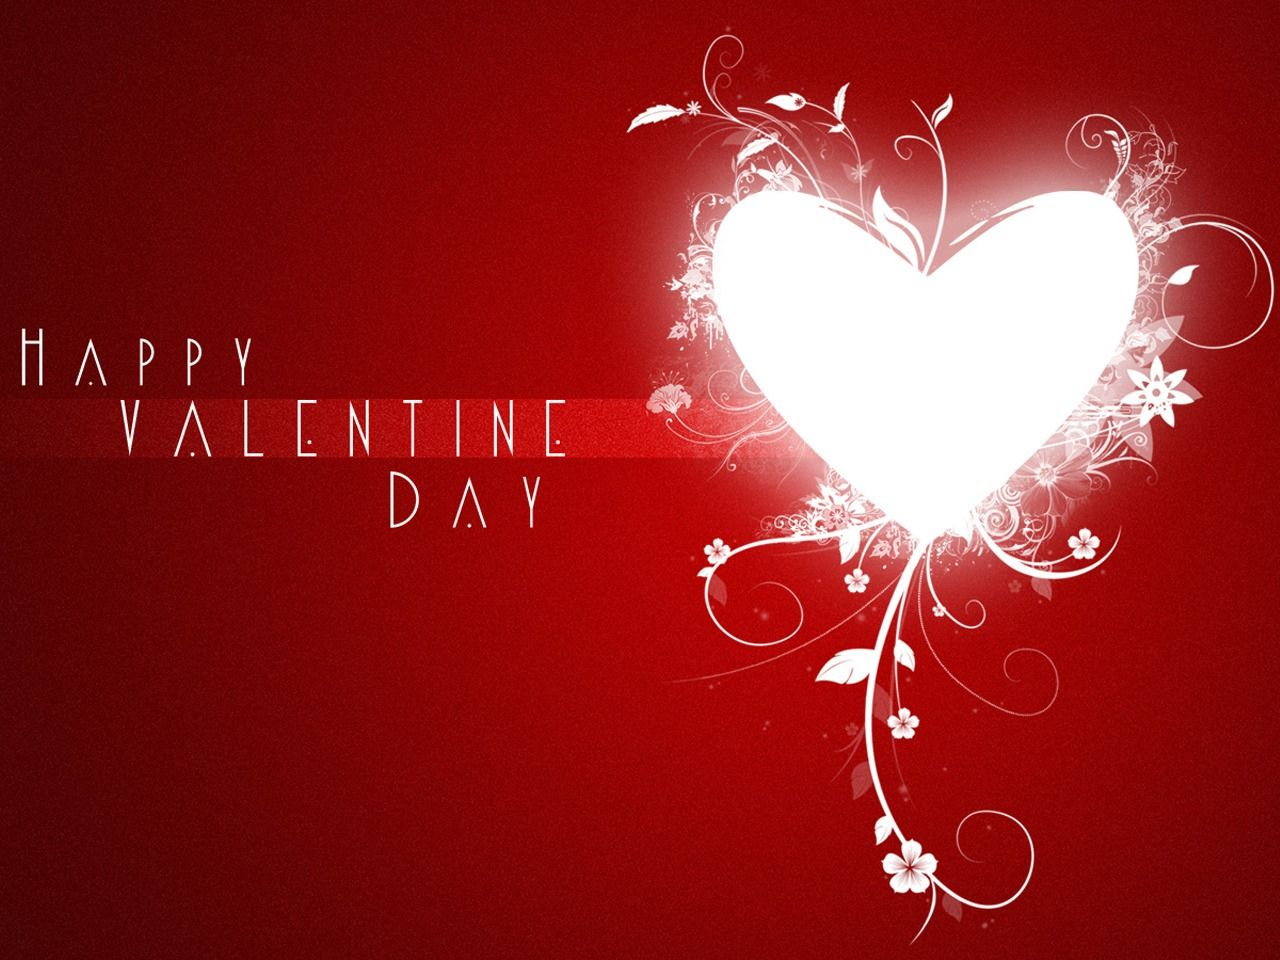 happy valentines day wallpaper 07 happy valentines day wallpaper 08